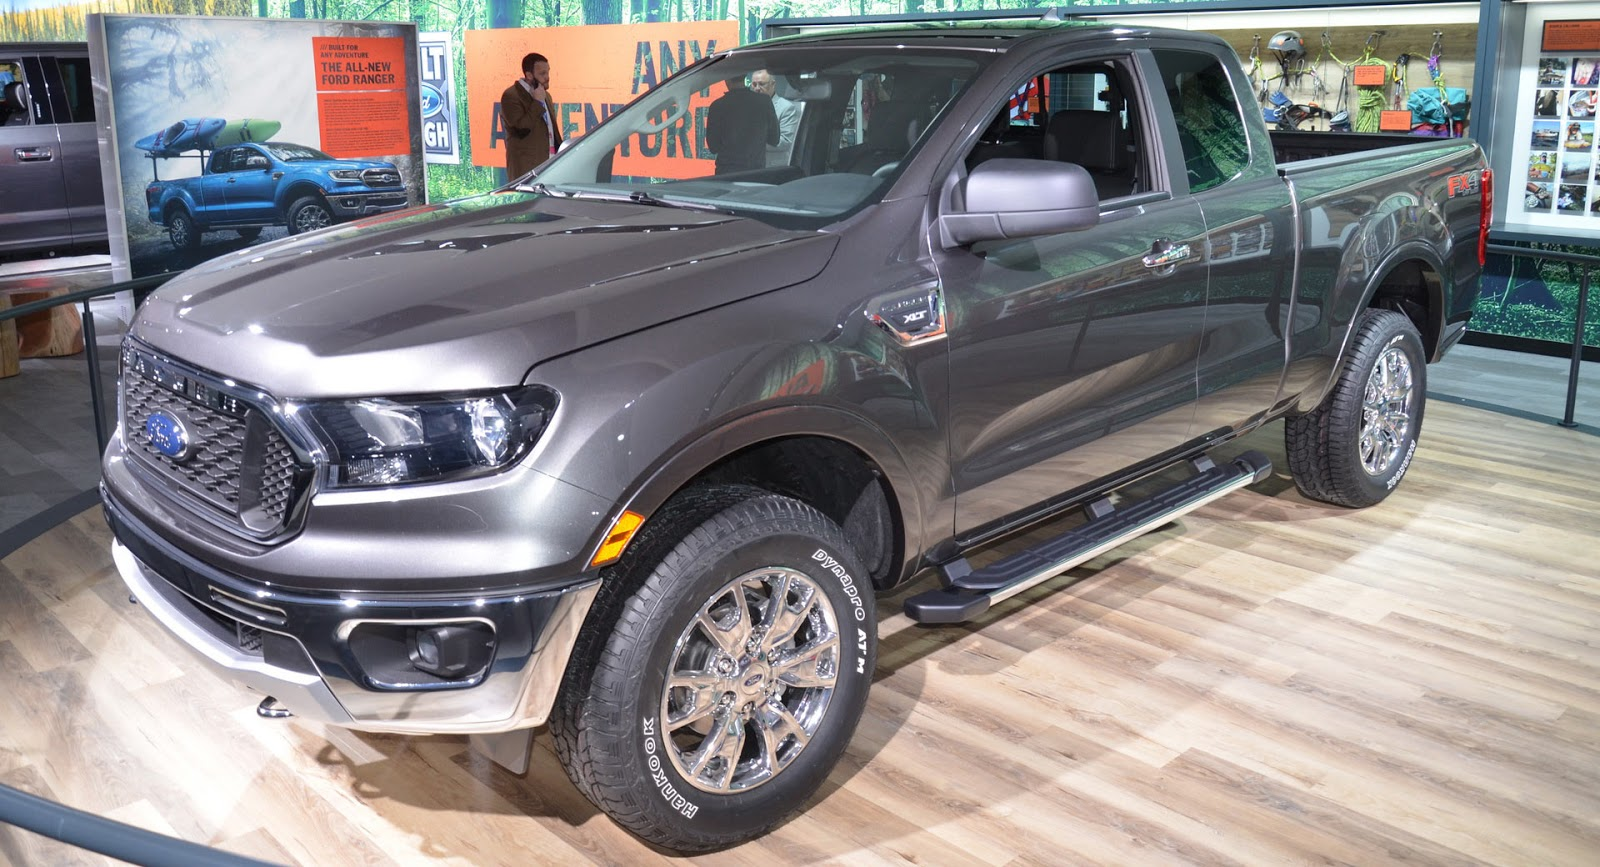 2019 ford ranger wants to become america s default midsize truck. Black Bedroom Furniture Sets. Home Design Ideas